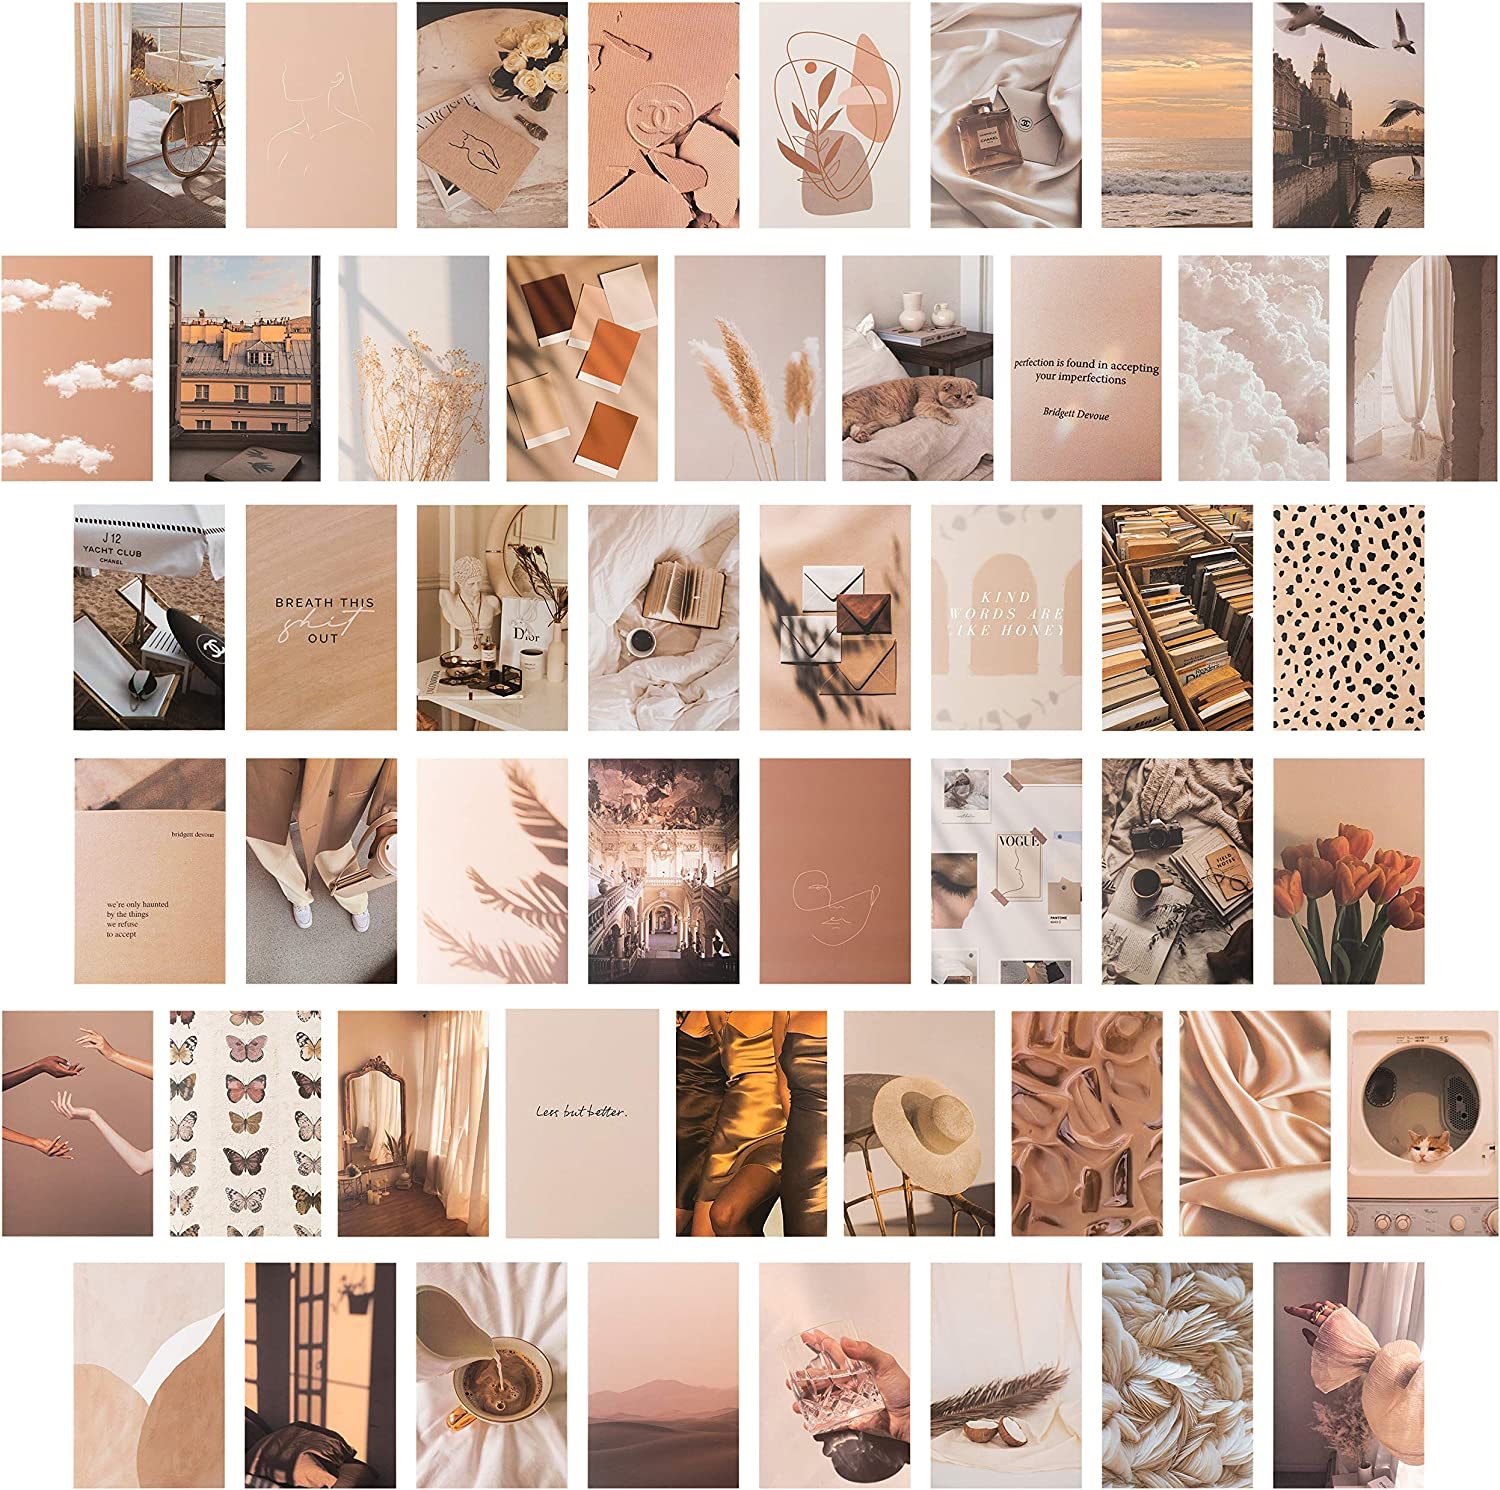 CY2SIDE 50PCS Beige Aesthetic Picture for Wall Collage, 50 Set 4x6 inch, Cream Collage Print Kit, Warm Color Room Decor for Girls, Wall Art Print for Room, Dorm Photo Display, VSCO Poster for Bedroom